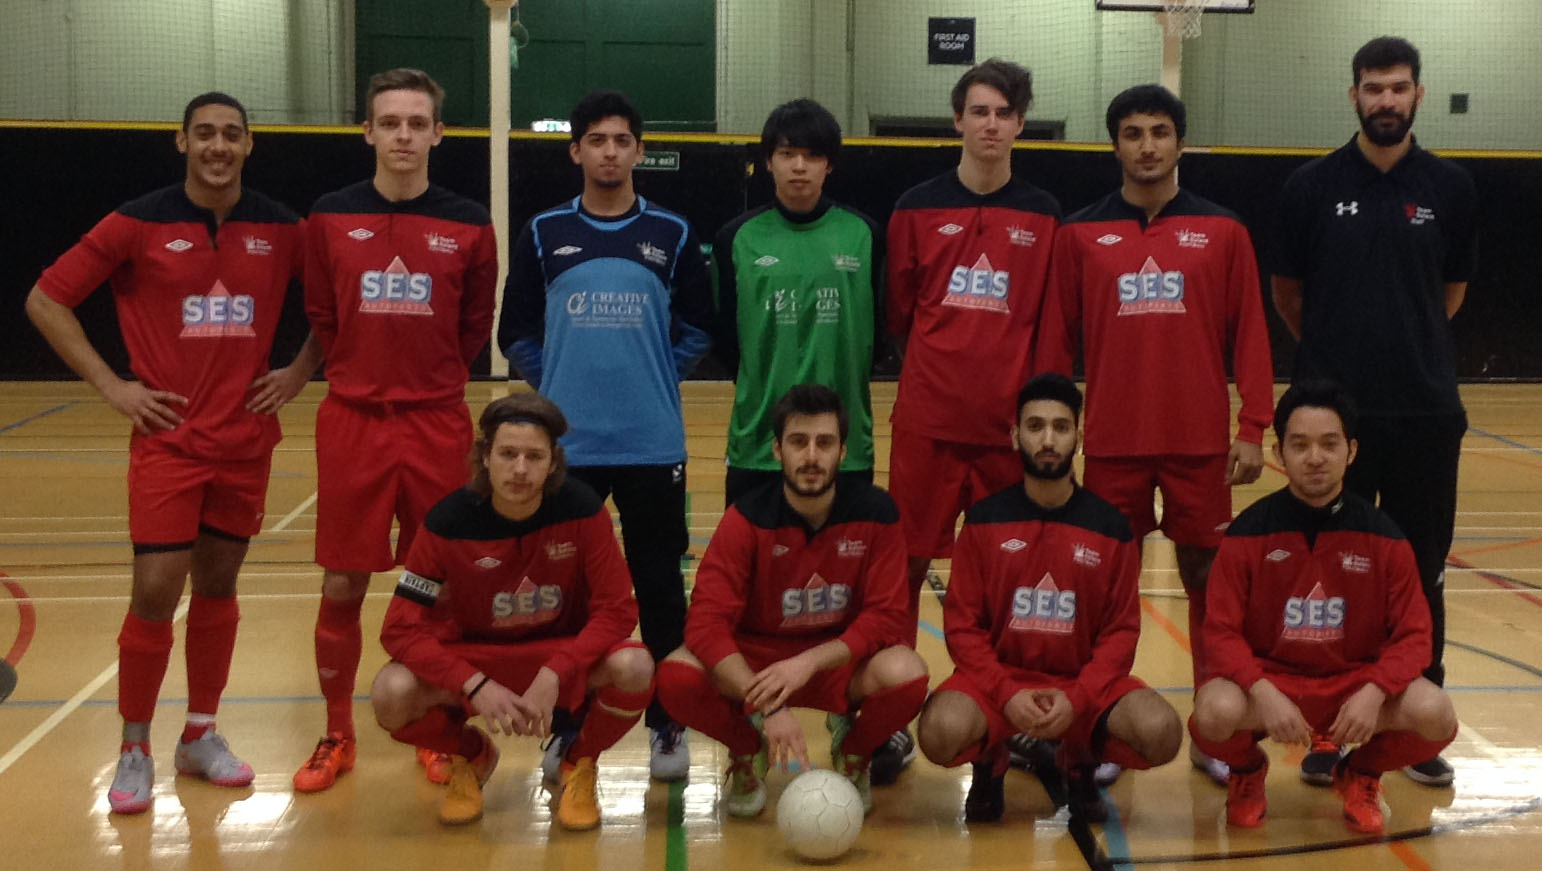 Solent's push to get futsal on the map